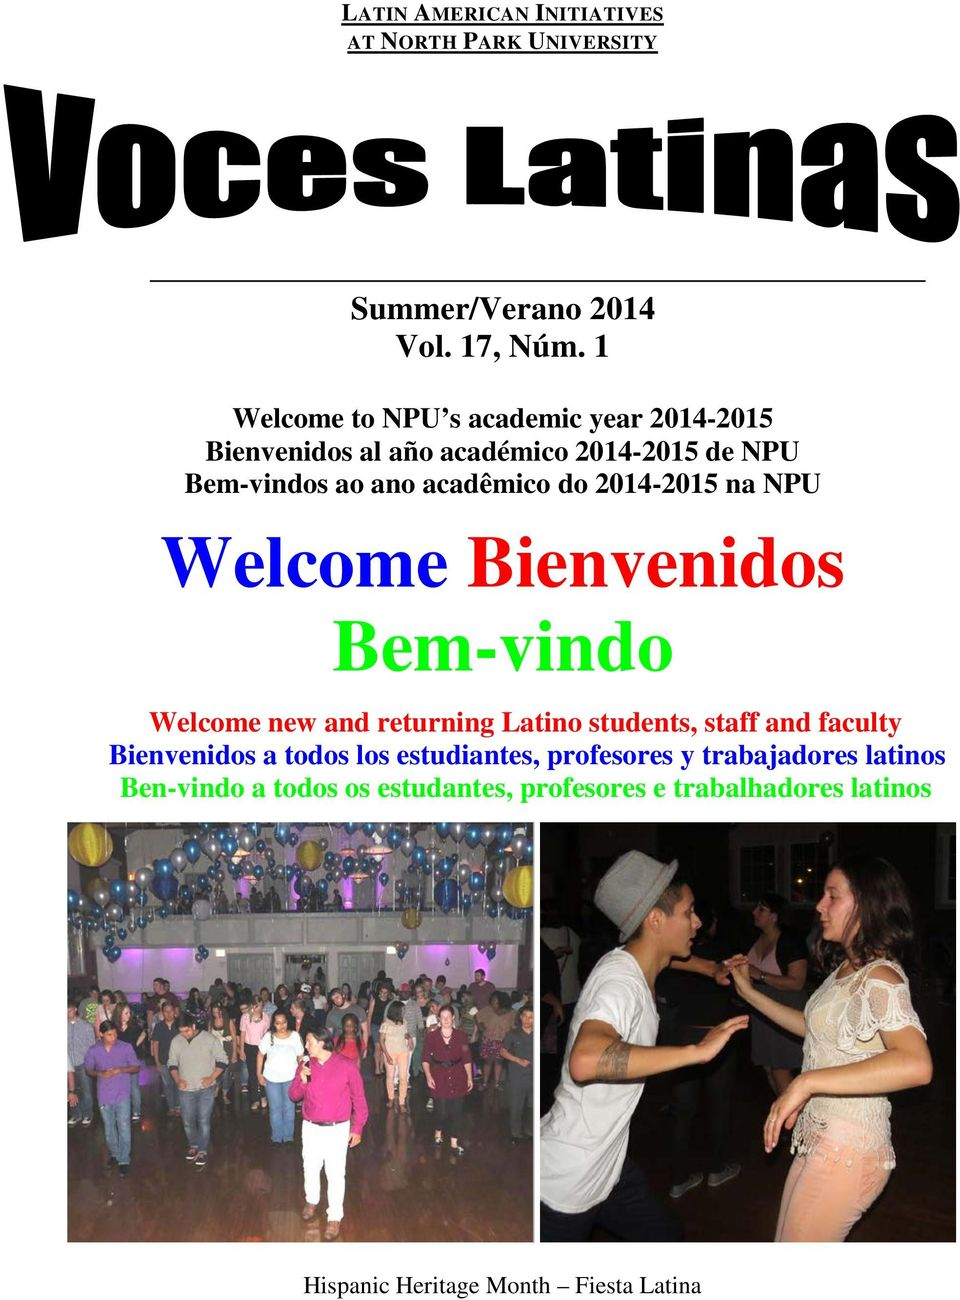 2014-2015 na NPU Welcome Bienvenidos Bem-vindo Welcome new and returning Latino students, staff and faculty Bienvenidos a